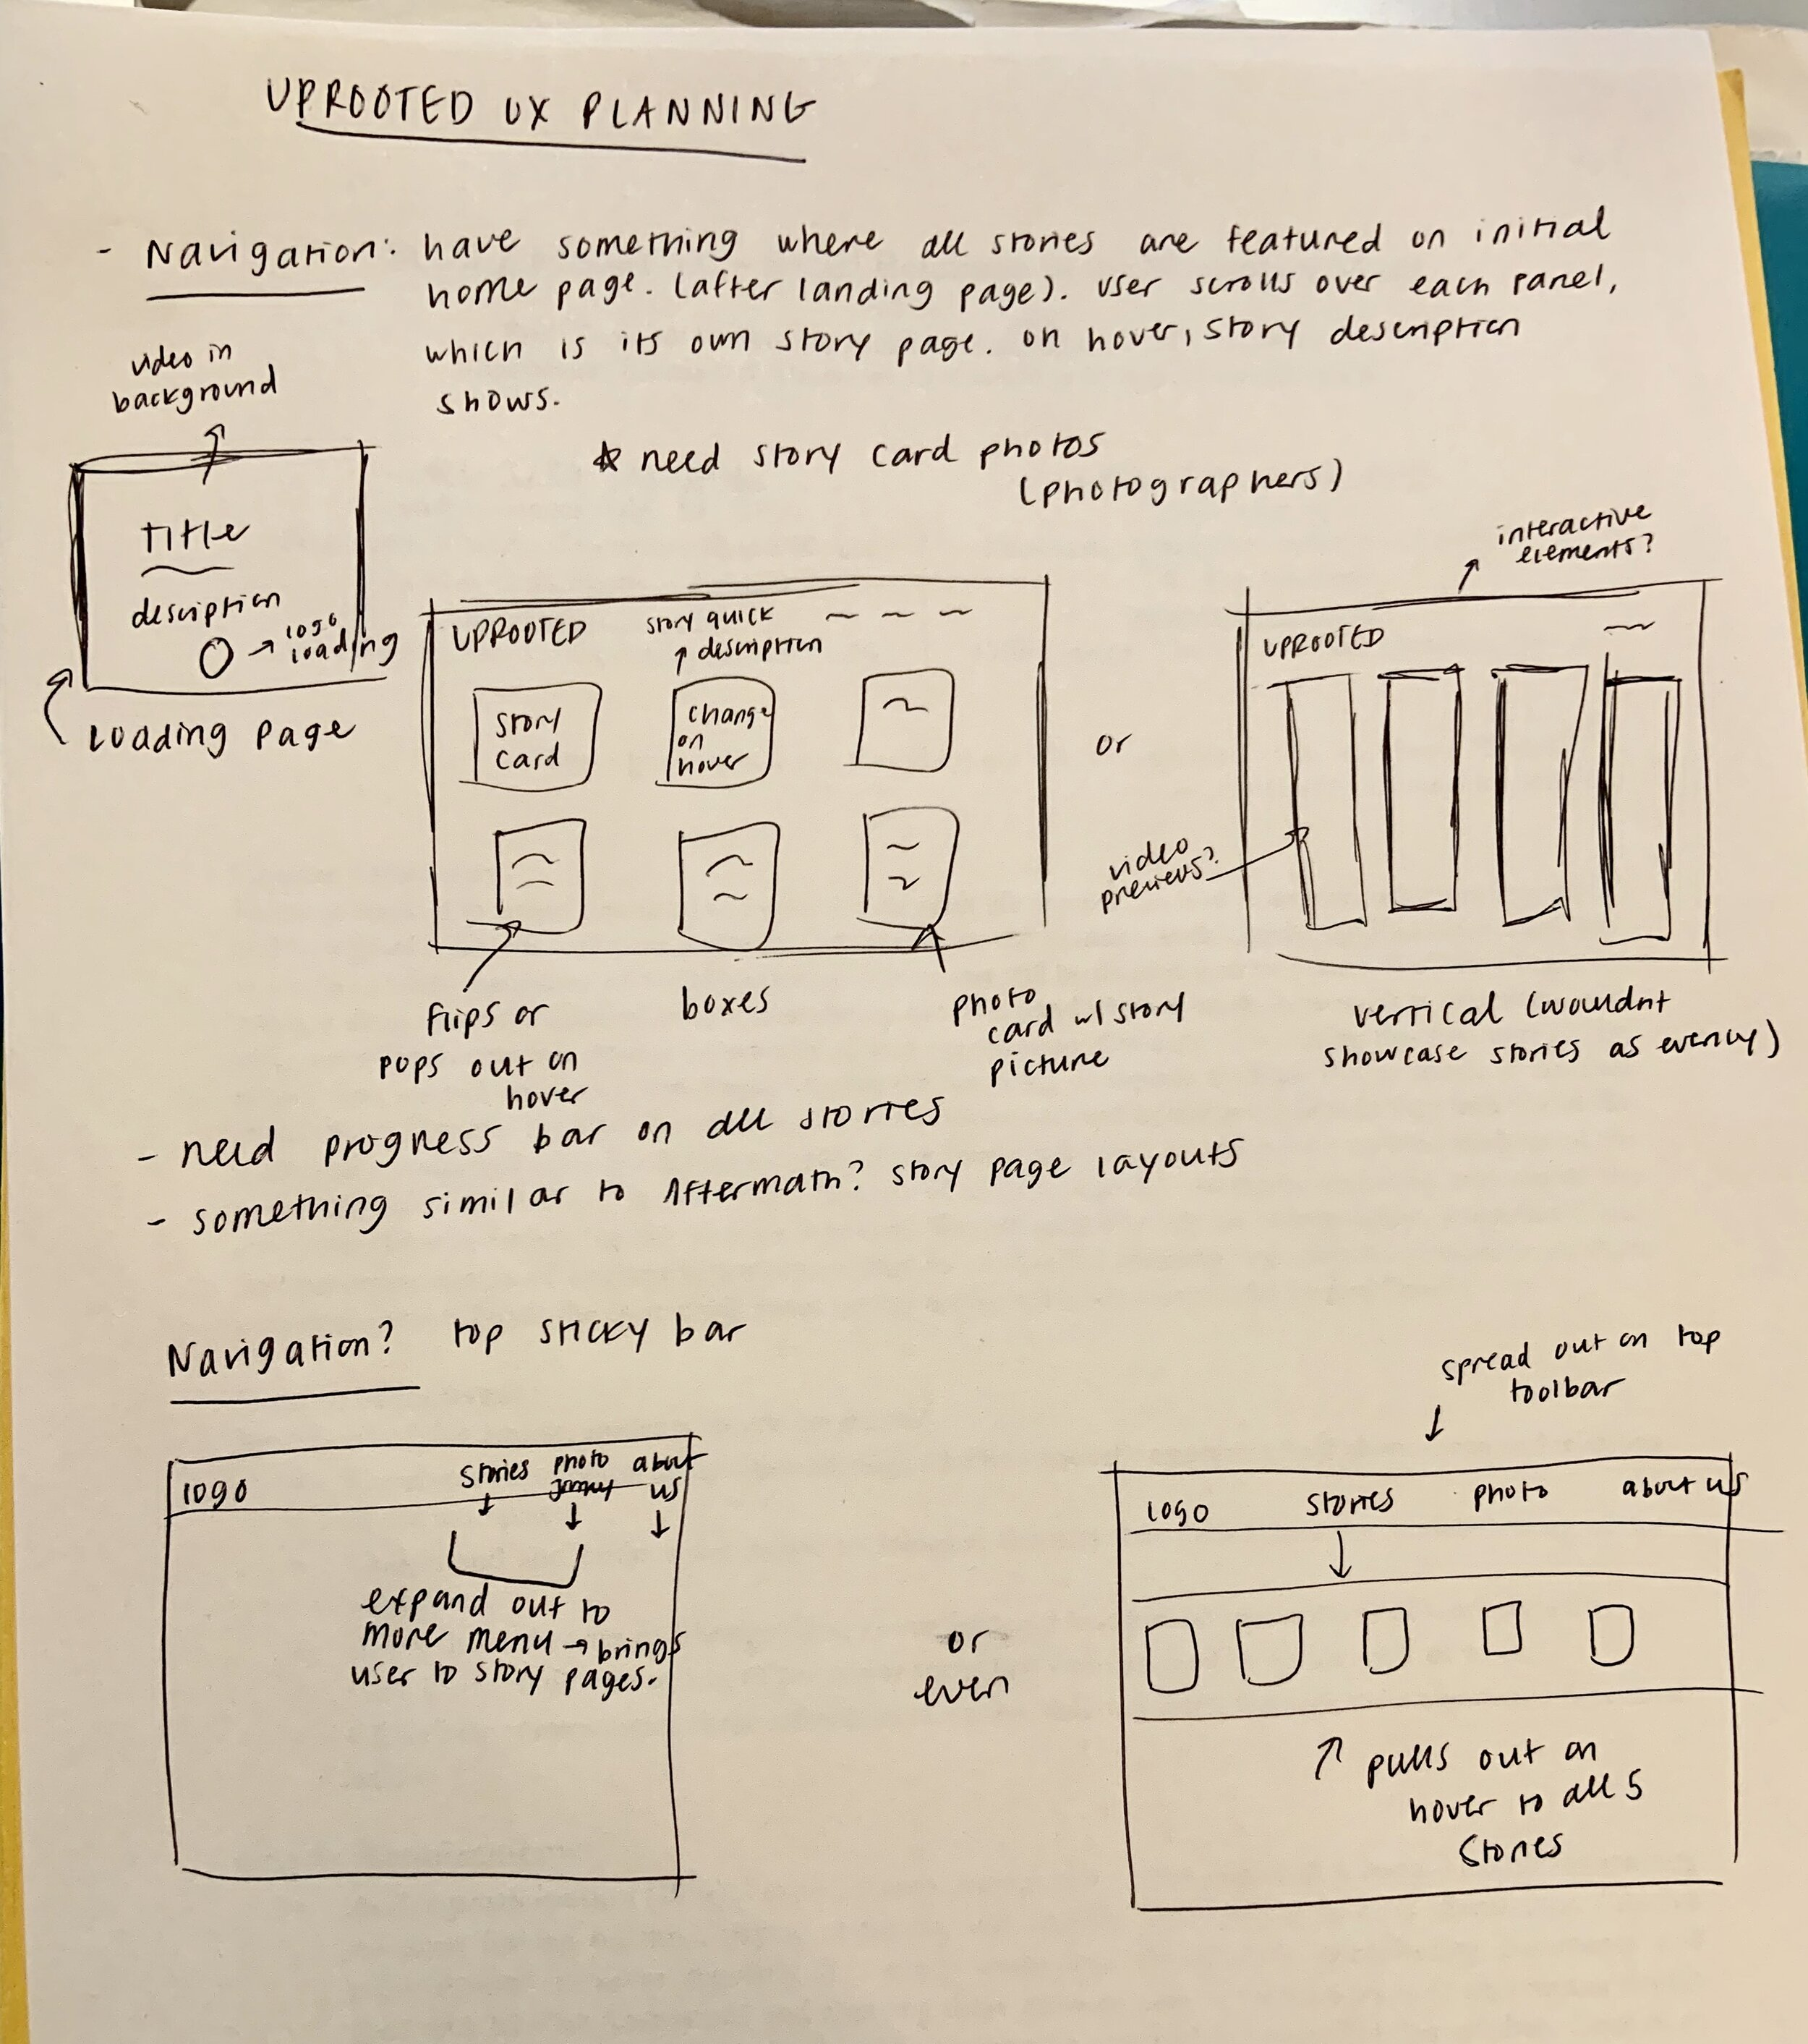 Initial UX Planning -